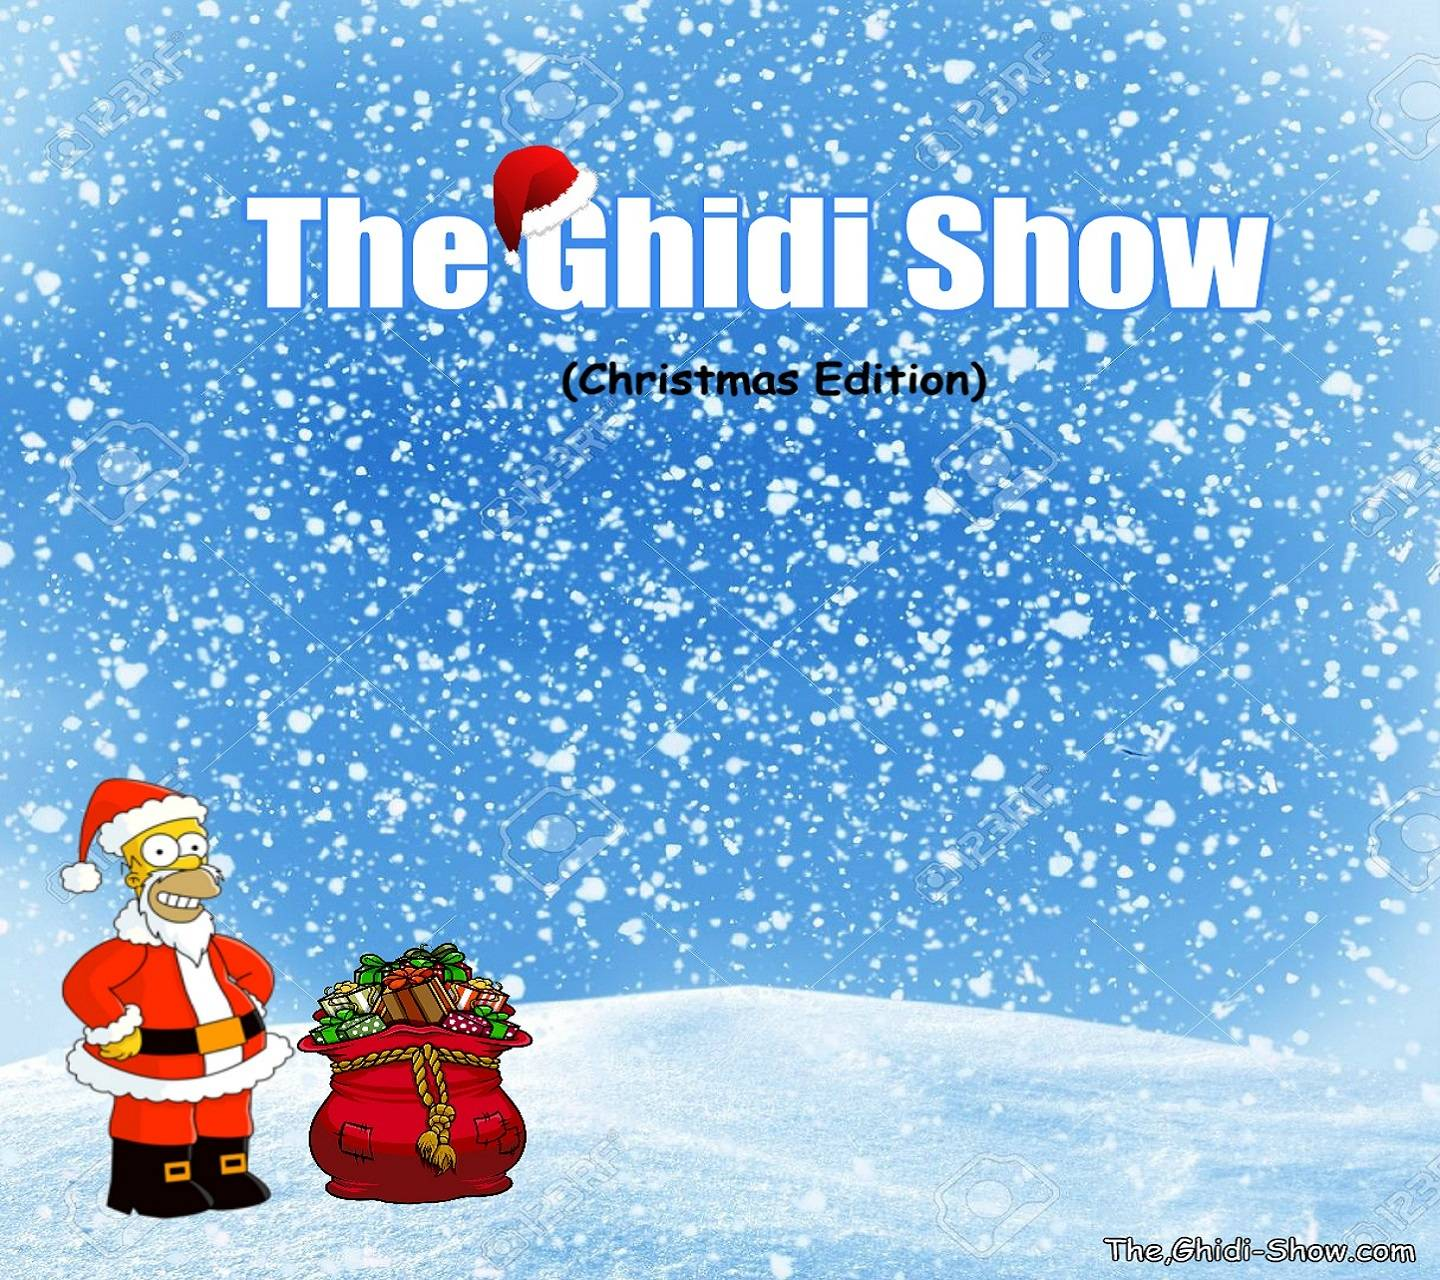 The Ghidi Show